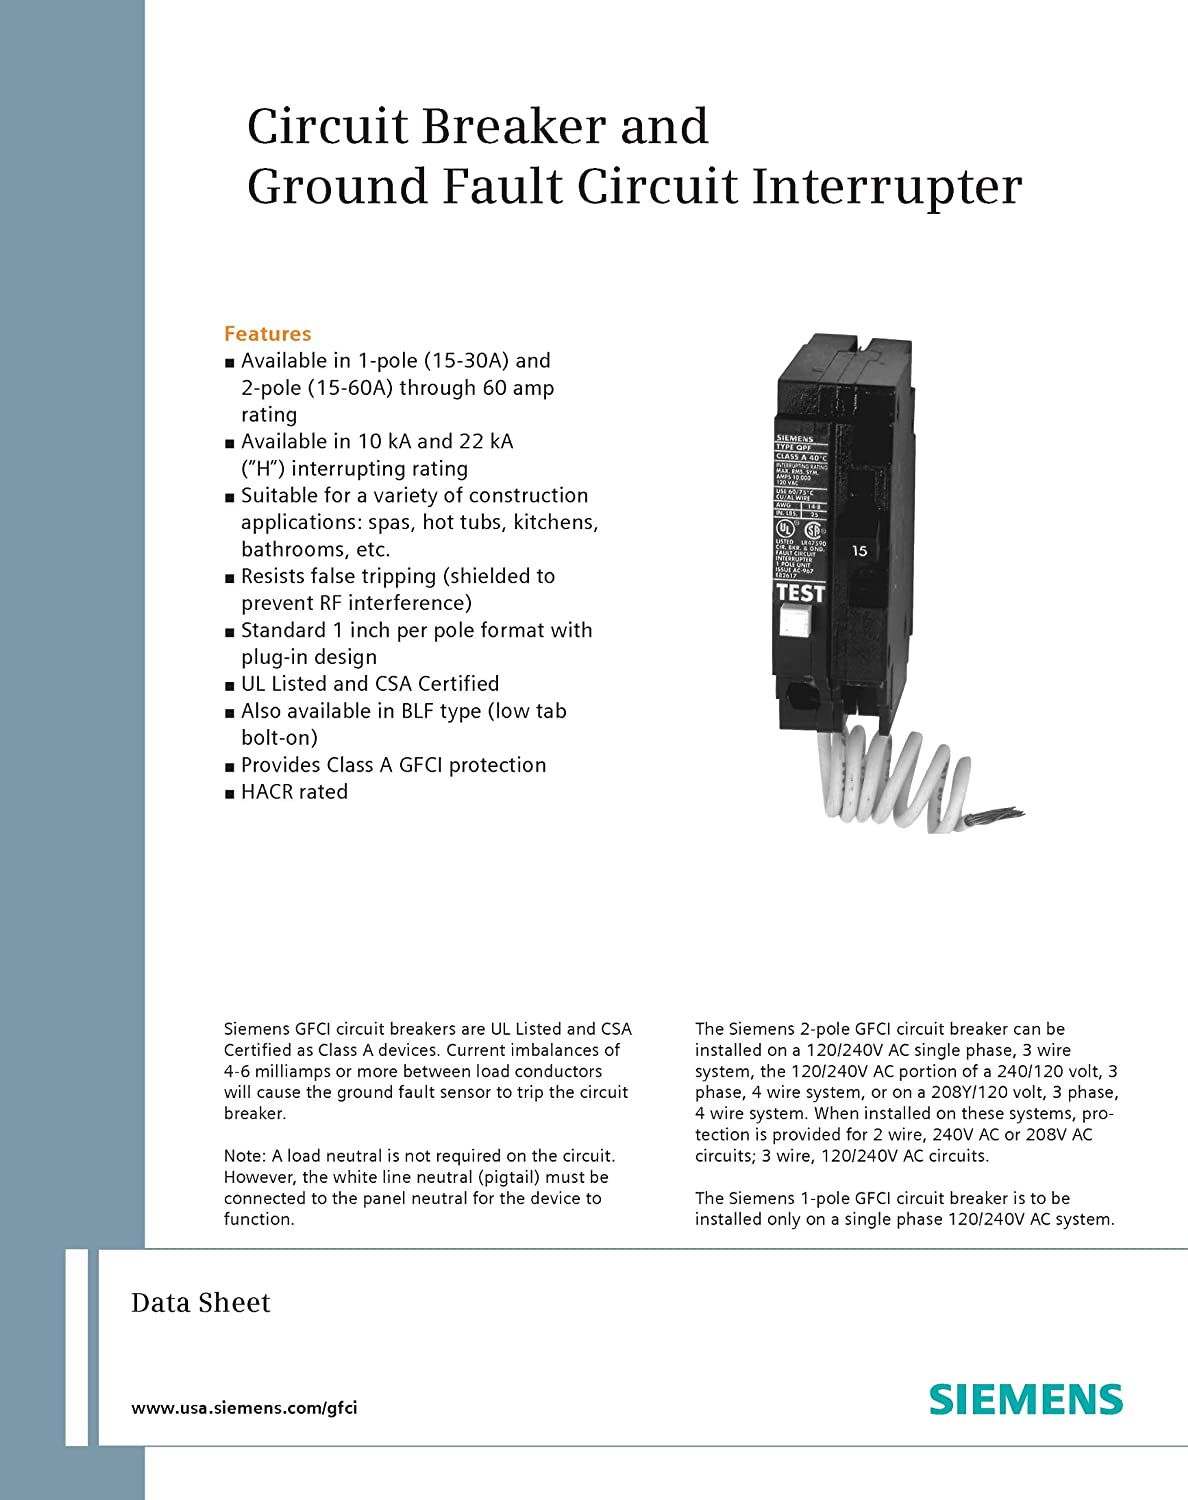 81CNoPv8enL._SL1500_ siemens qf220 20 amp 2 pole 240 volt ground fault circuit 240 volt gfci breaker wiring diagram at readyjetset.co